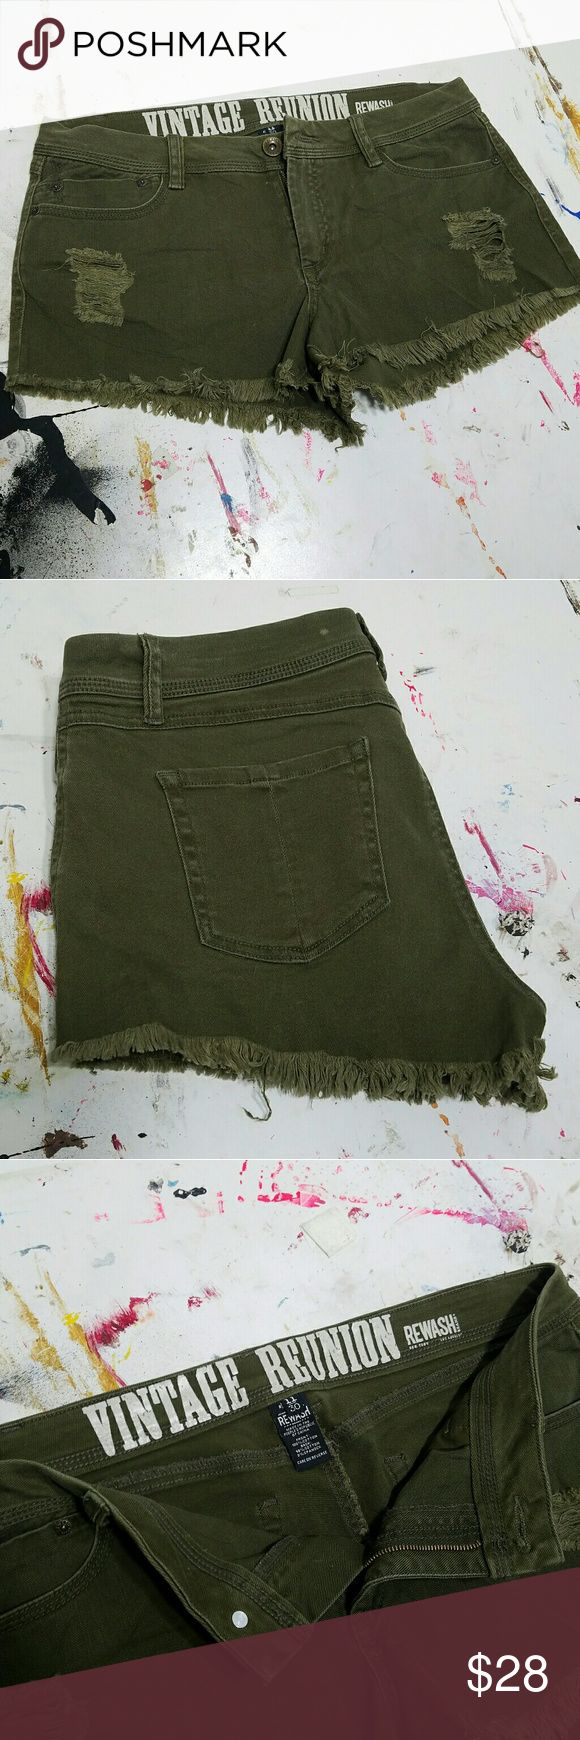 NWOT Distressed army shorts Like what you see but not the price tag? Make an offer =) feel free to ask any questions!   NEW WITHOUT TAGS Vintage Reunion  Shorts